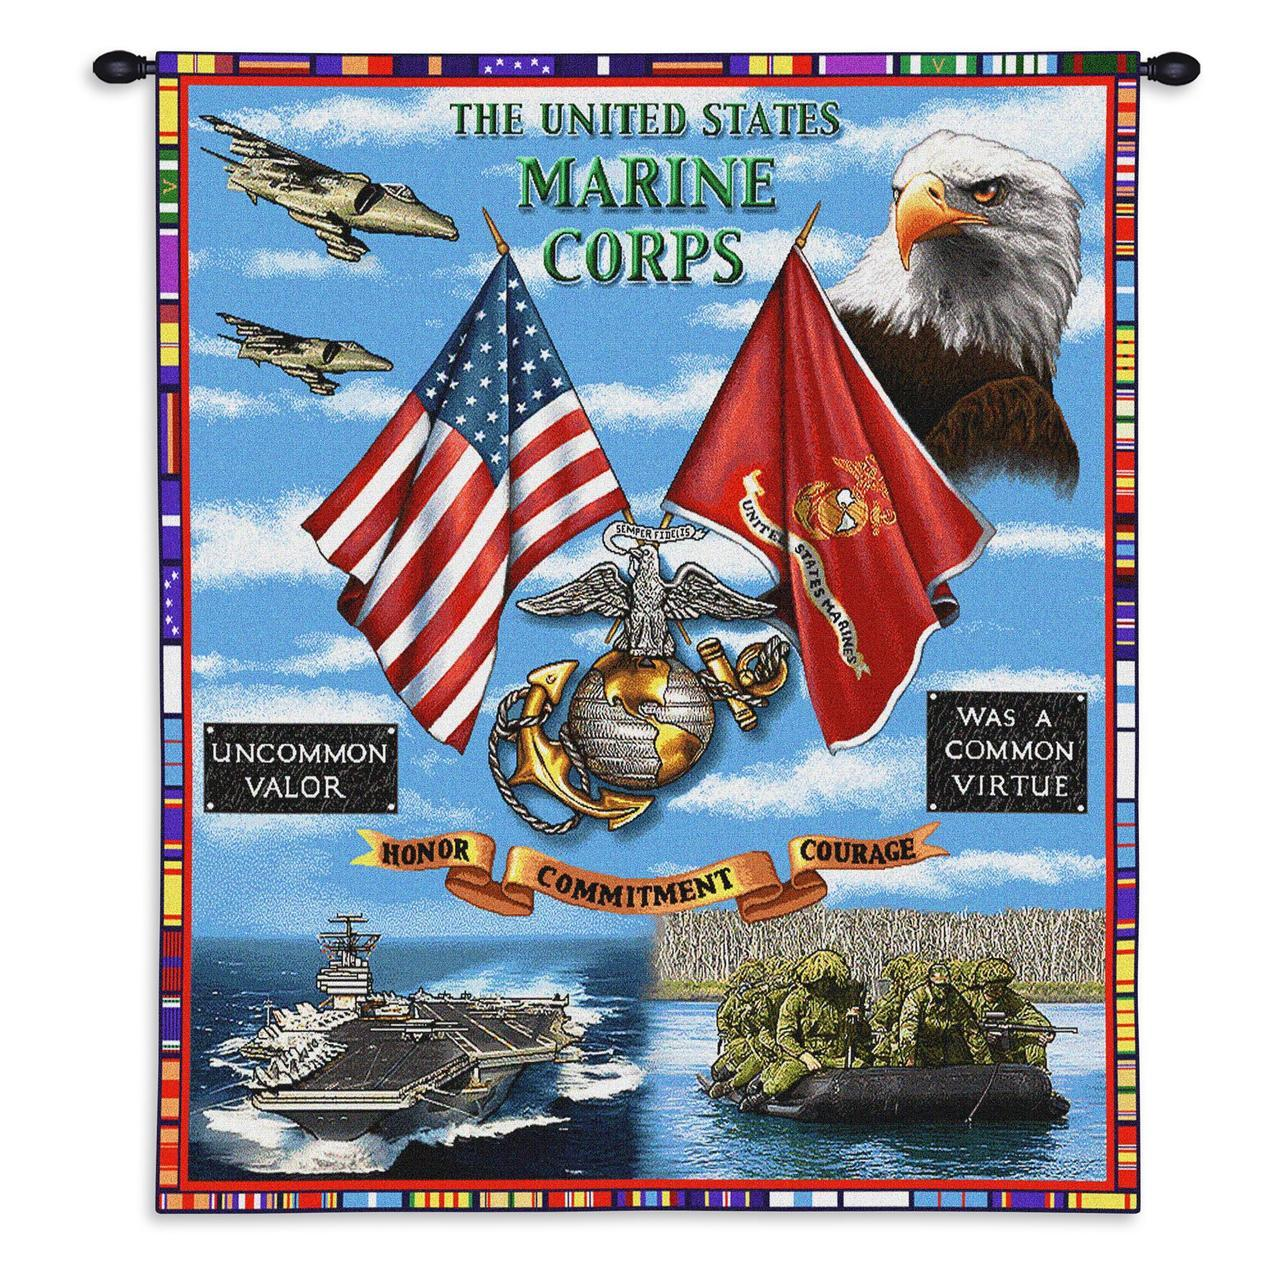 Tapestry-Wall Hanging-26 x 34-Those Who Serve-USMC-Aircraft Carrier